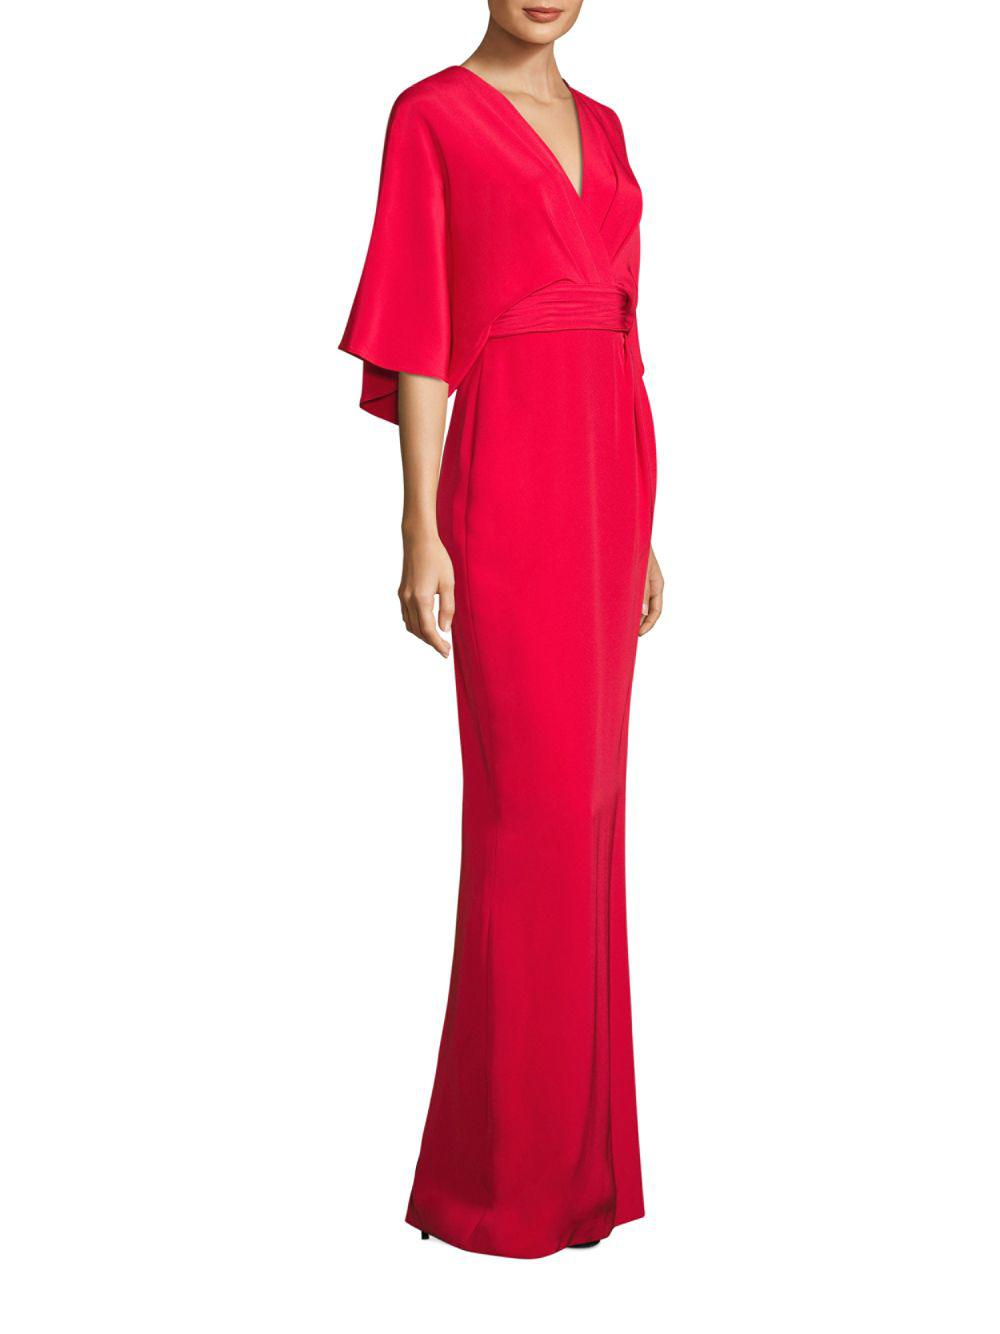 Lyst - Theia Solid Silk Blend Kimono Gown in Red - Save 13%